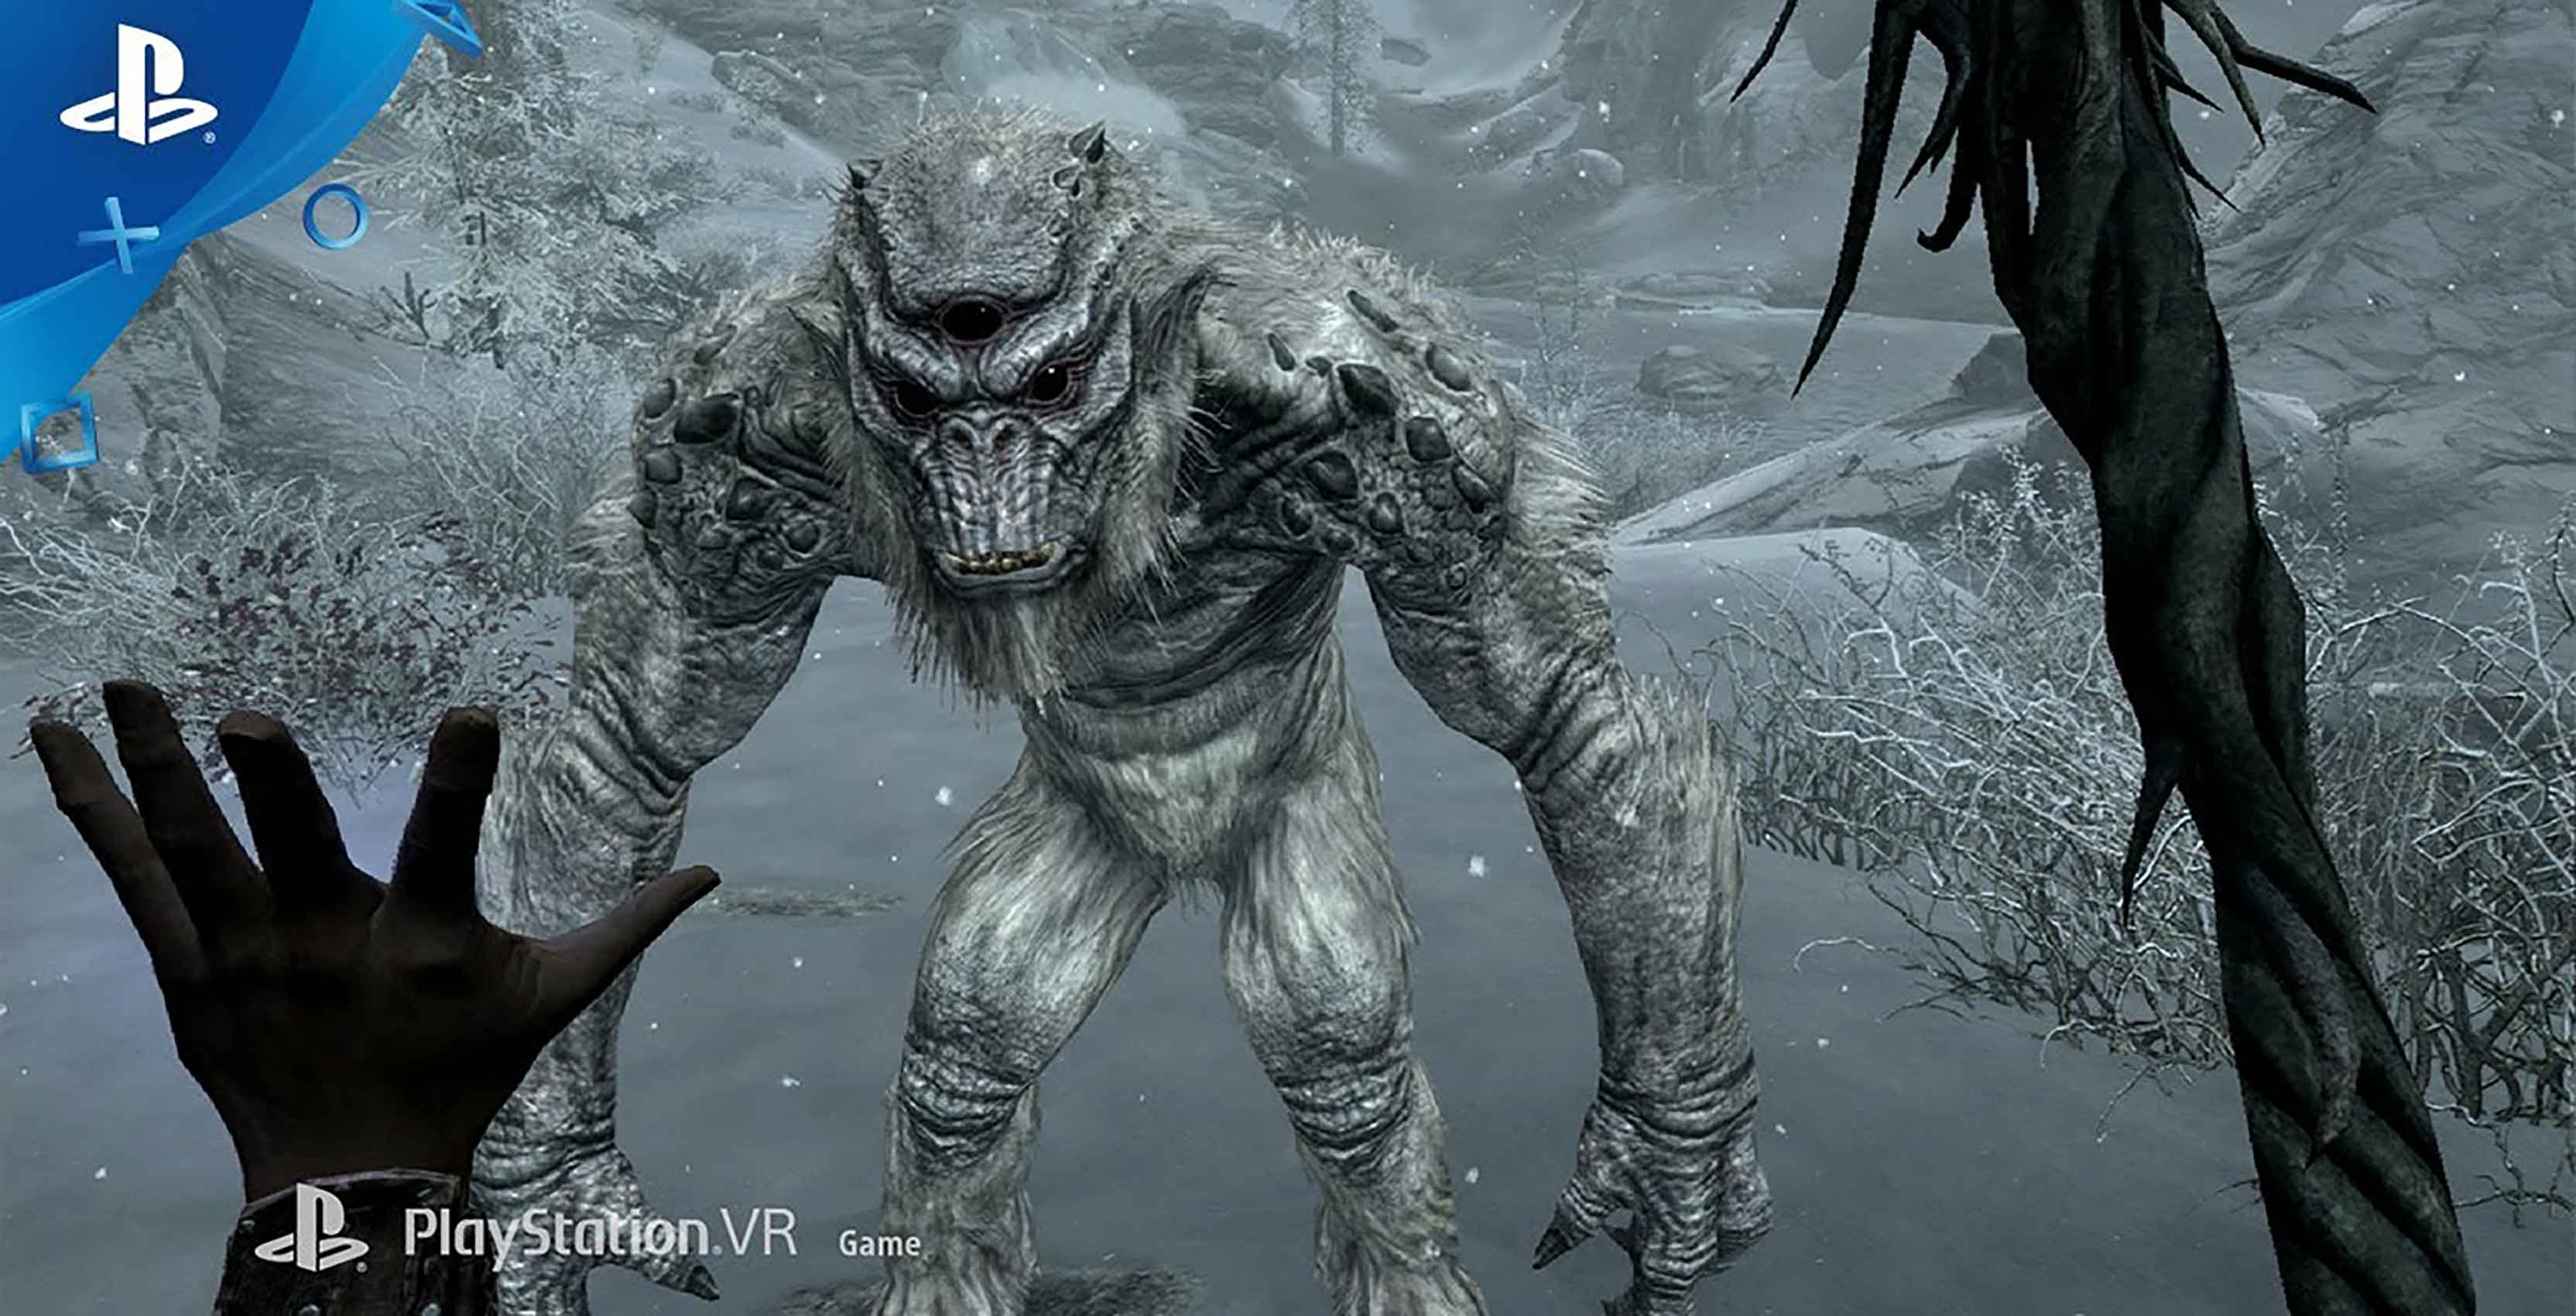 Skyrim VR, DOOM VFR And Fallout 4 VR Release Dates Revealed